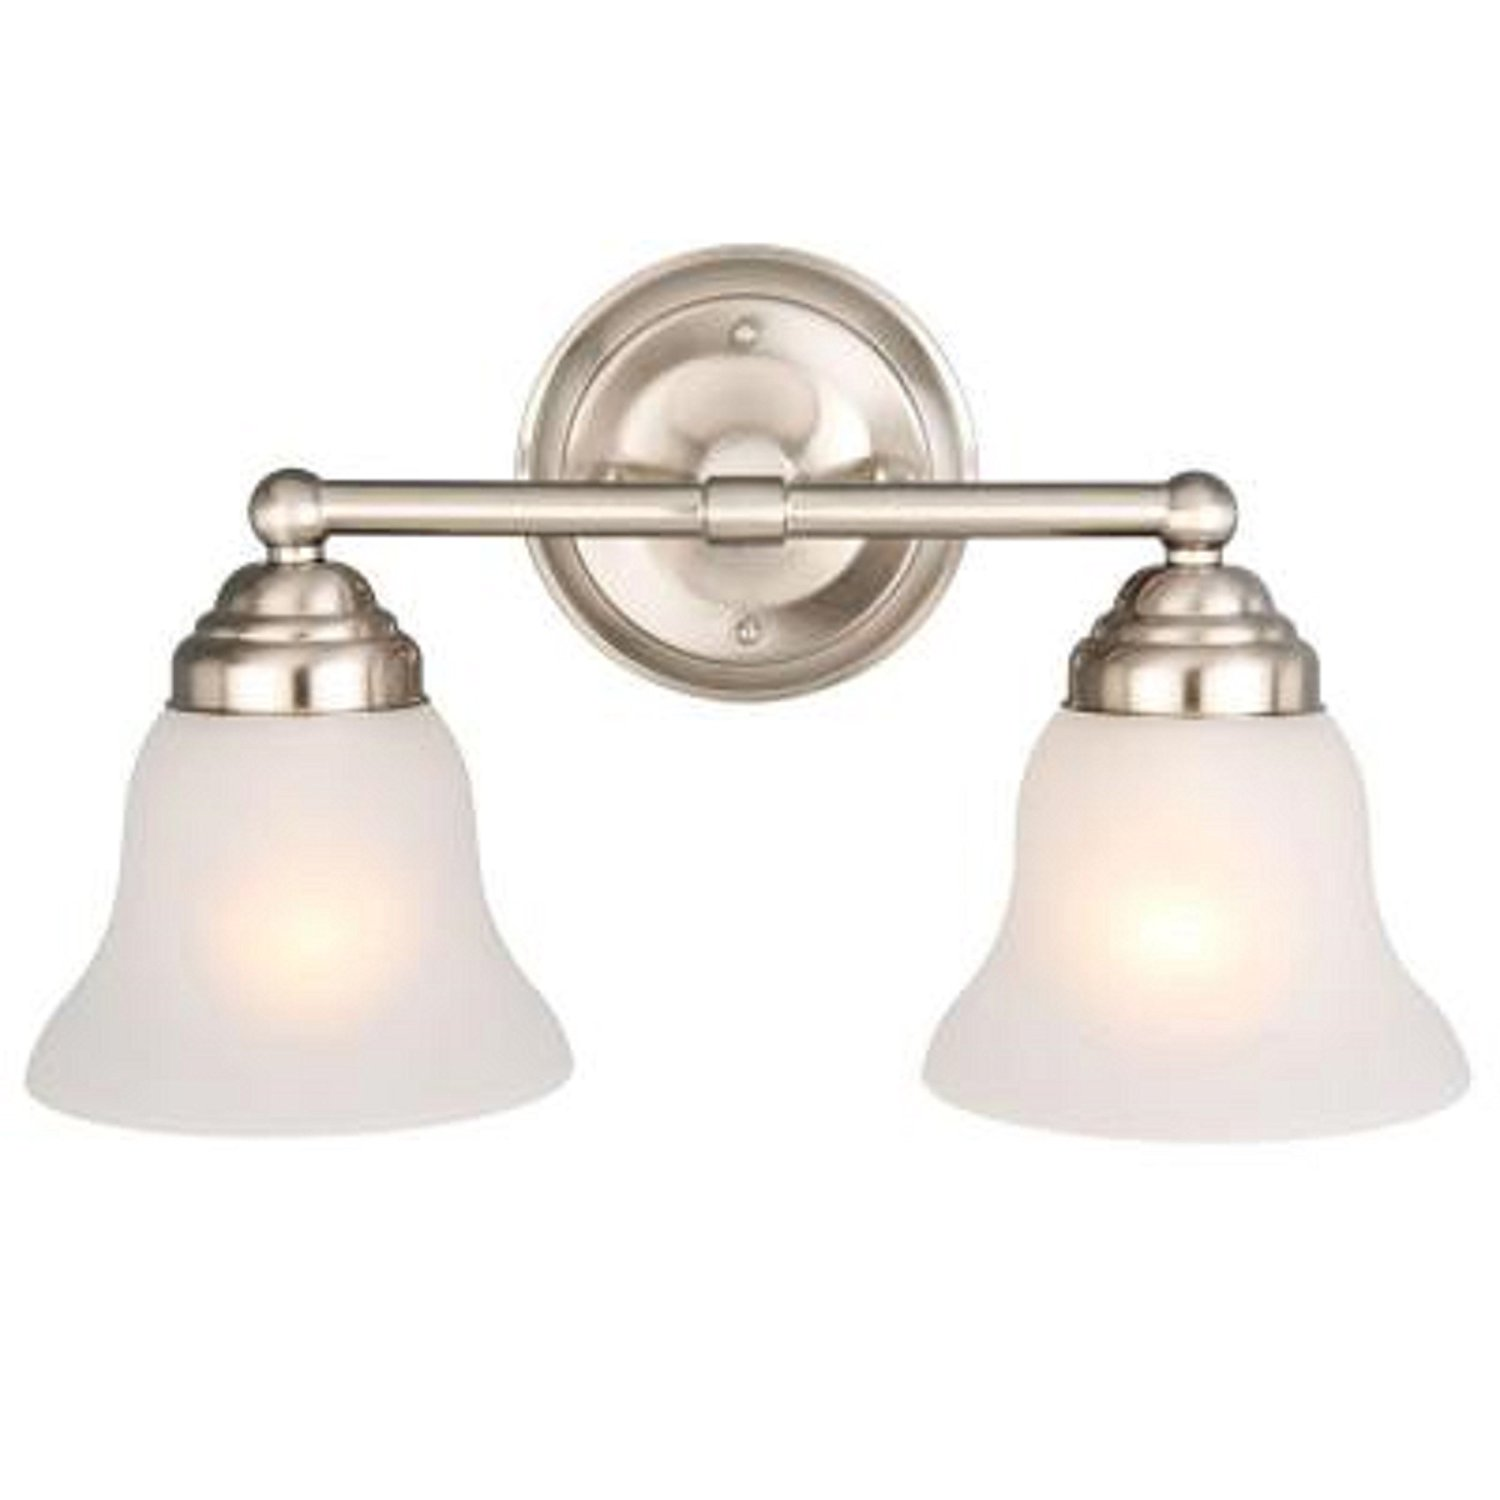 2-light Brushed Nickel Vanity, Durable steel construction By Hampton Bay by